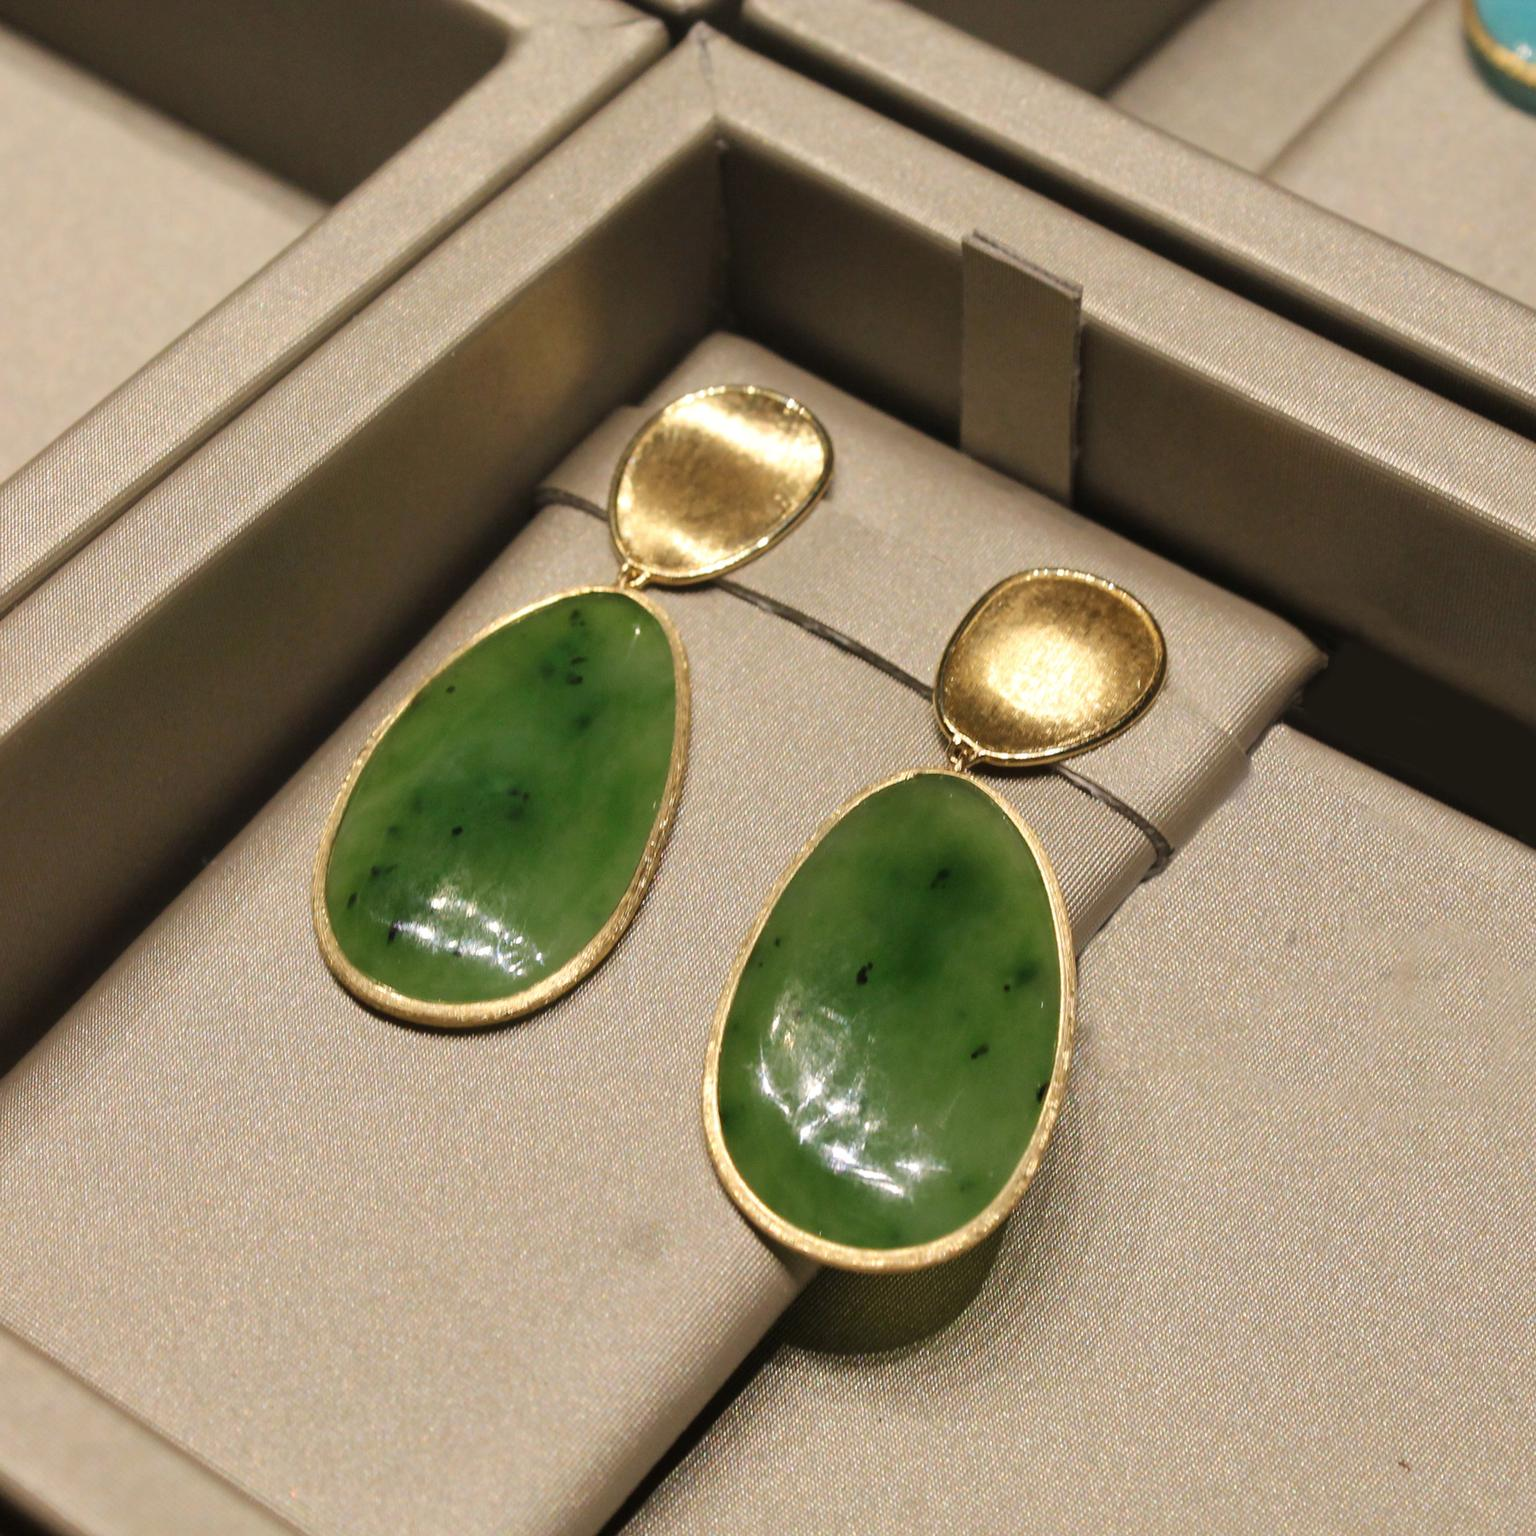 Marco Bicego Unico jade earrings